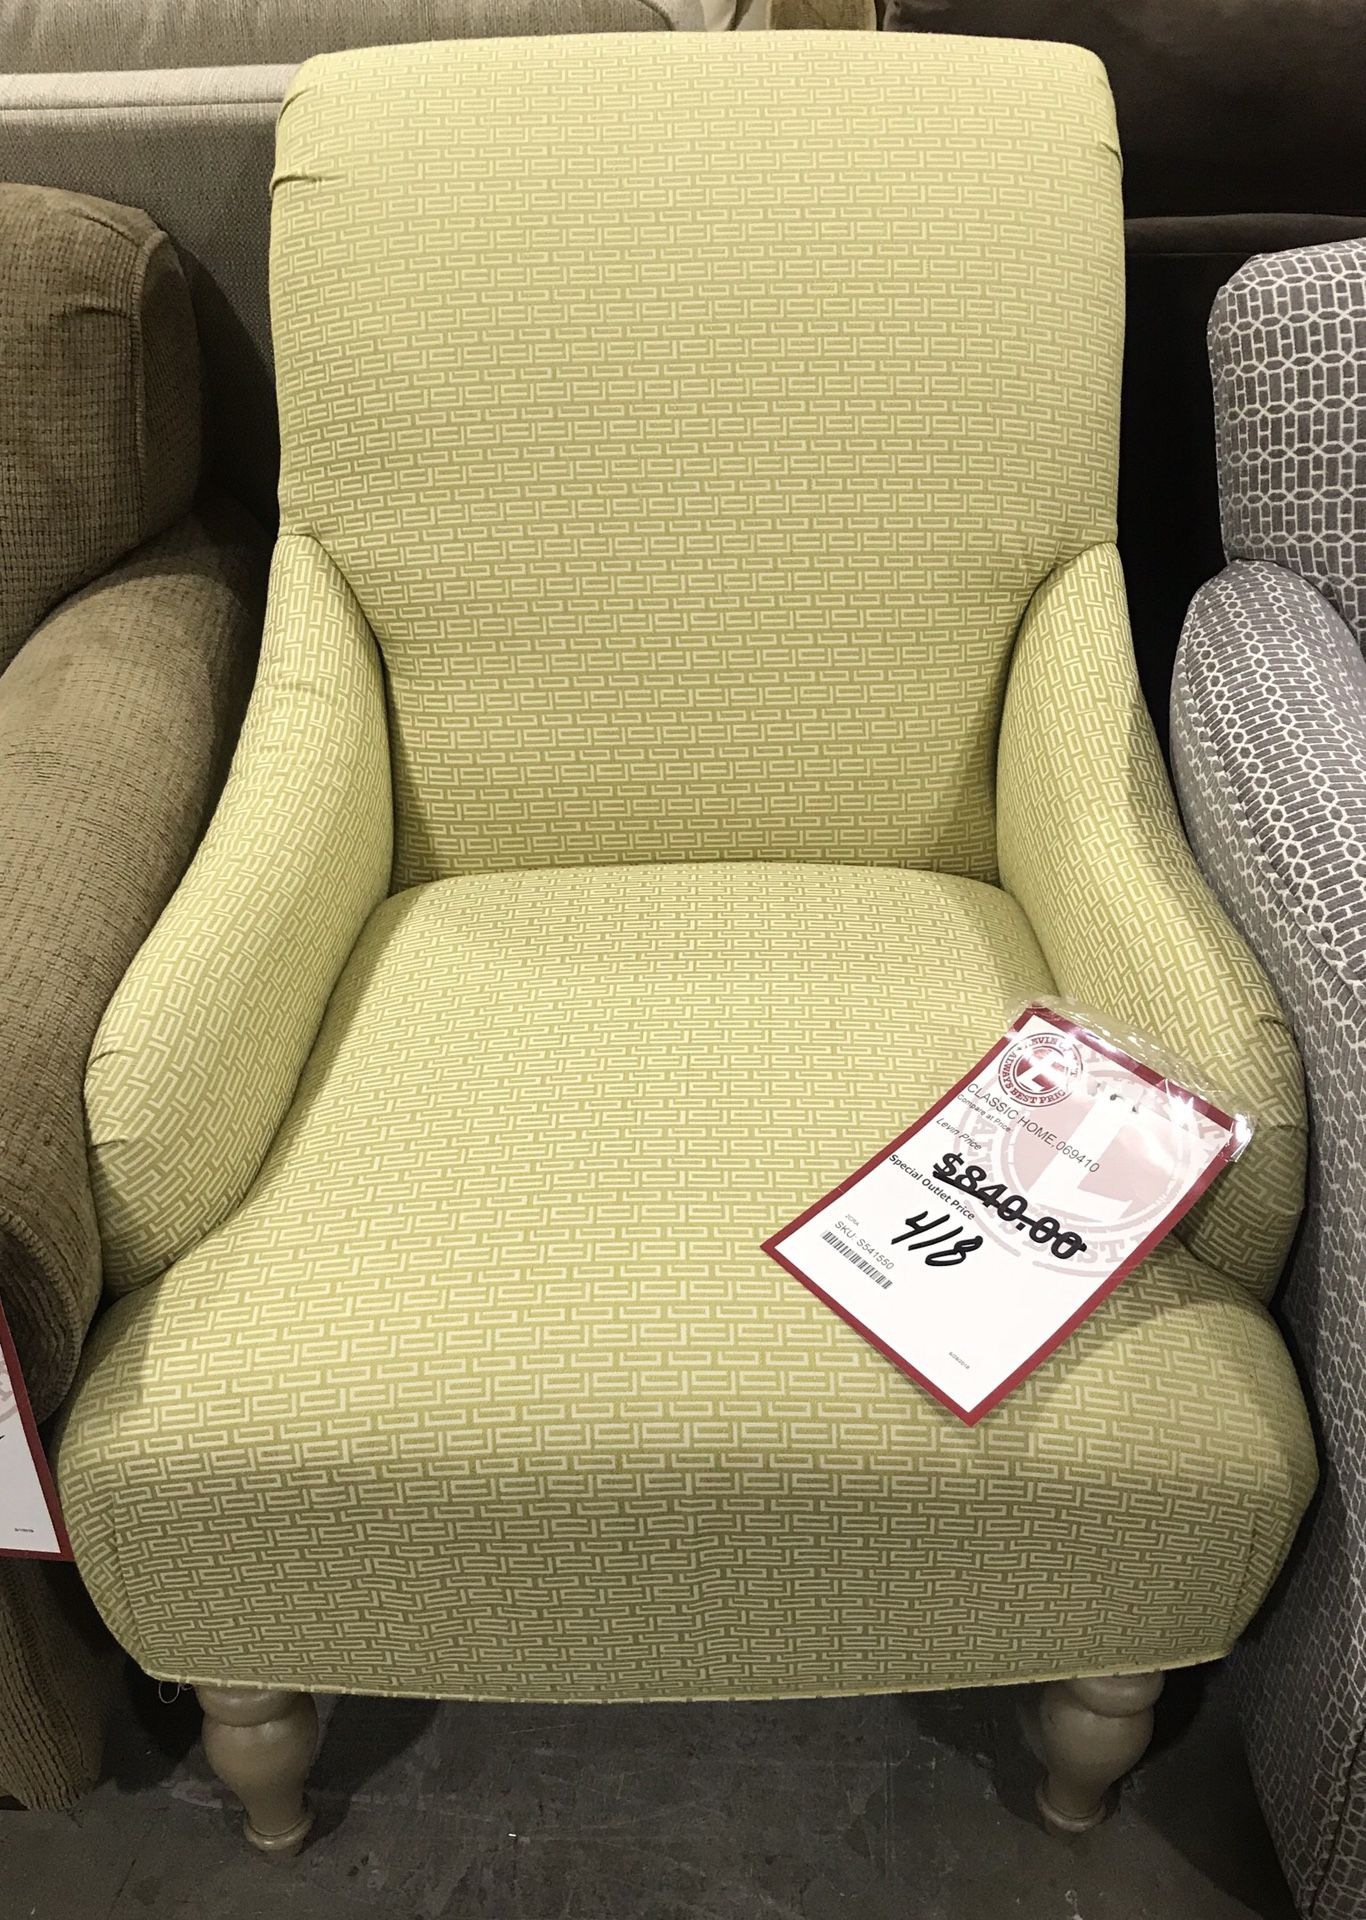 Classic Home chair, original price $840.00, reduced today clearance down to $248